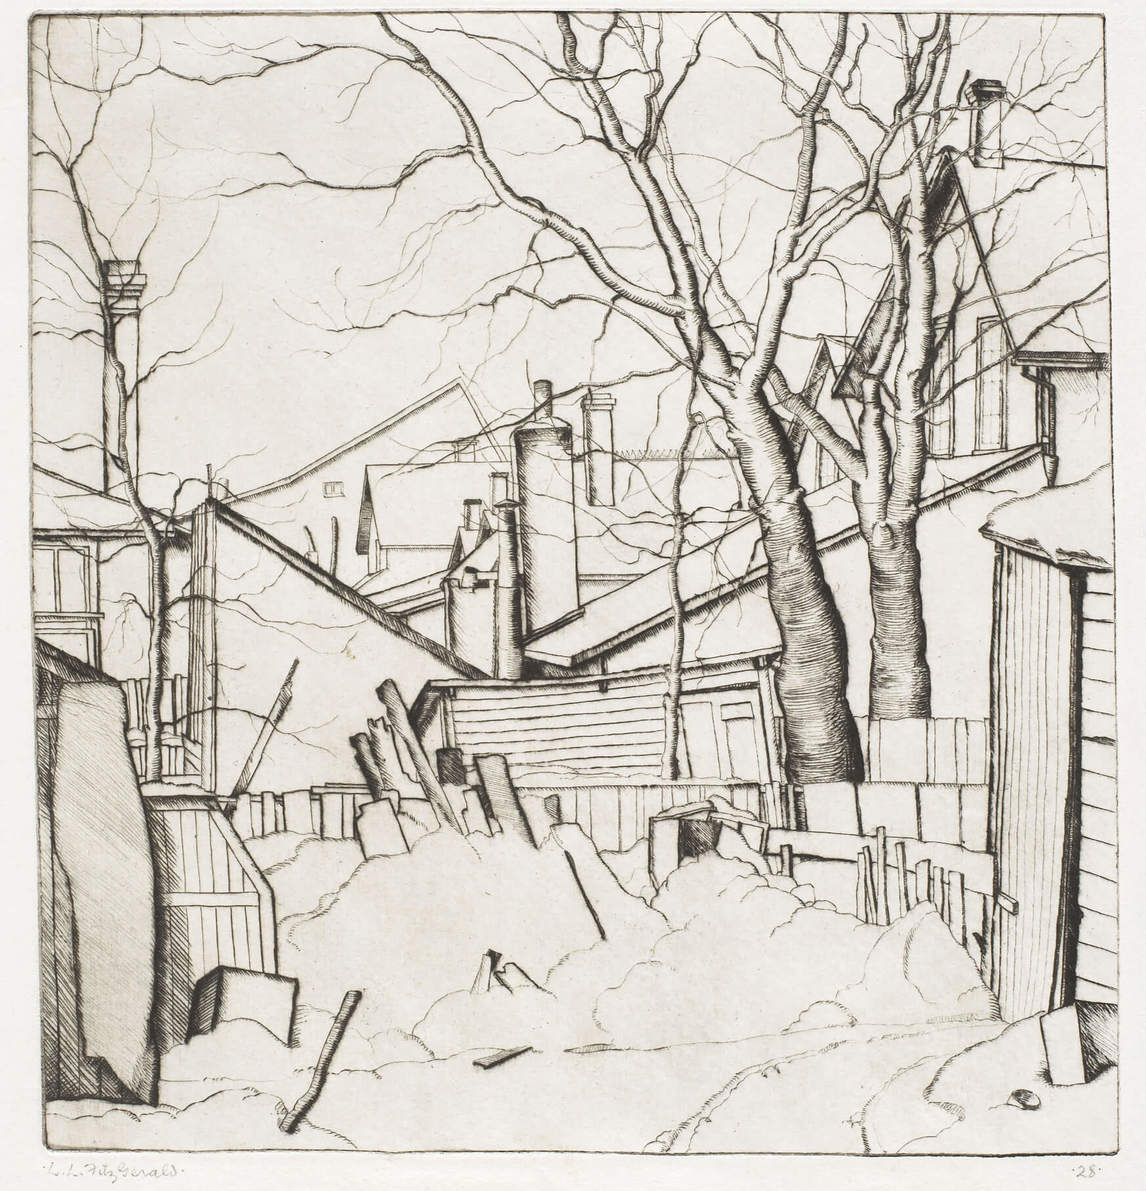 Art Canada Institute, Lionel LeMoine Fitzgerald, Backyards, Water Street, 1927, State VI/VI